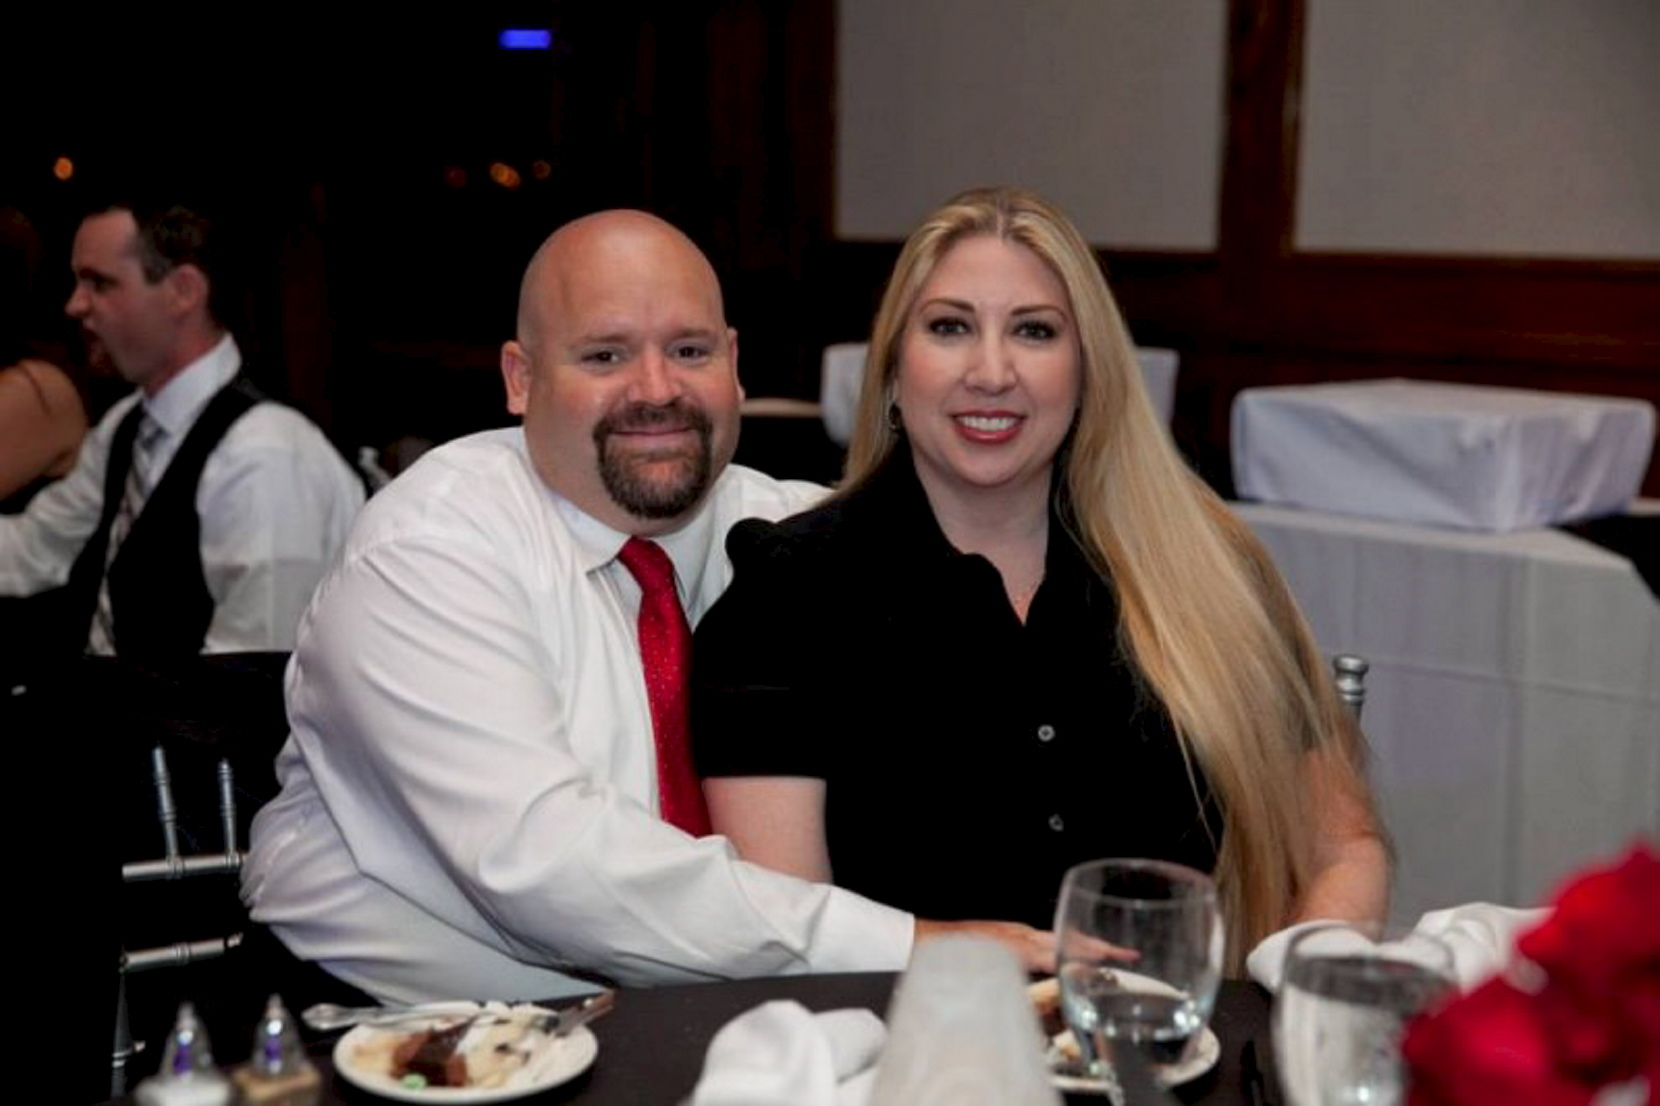 Robert Adams pictured with his wife Summer. Picture via gofundme.